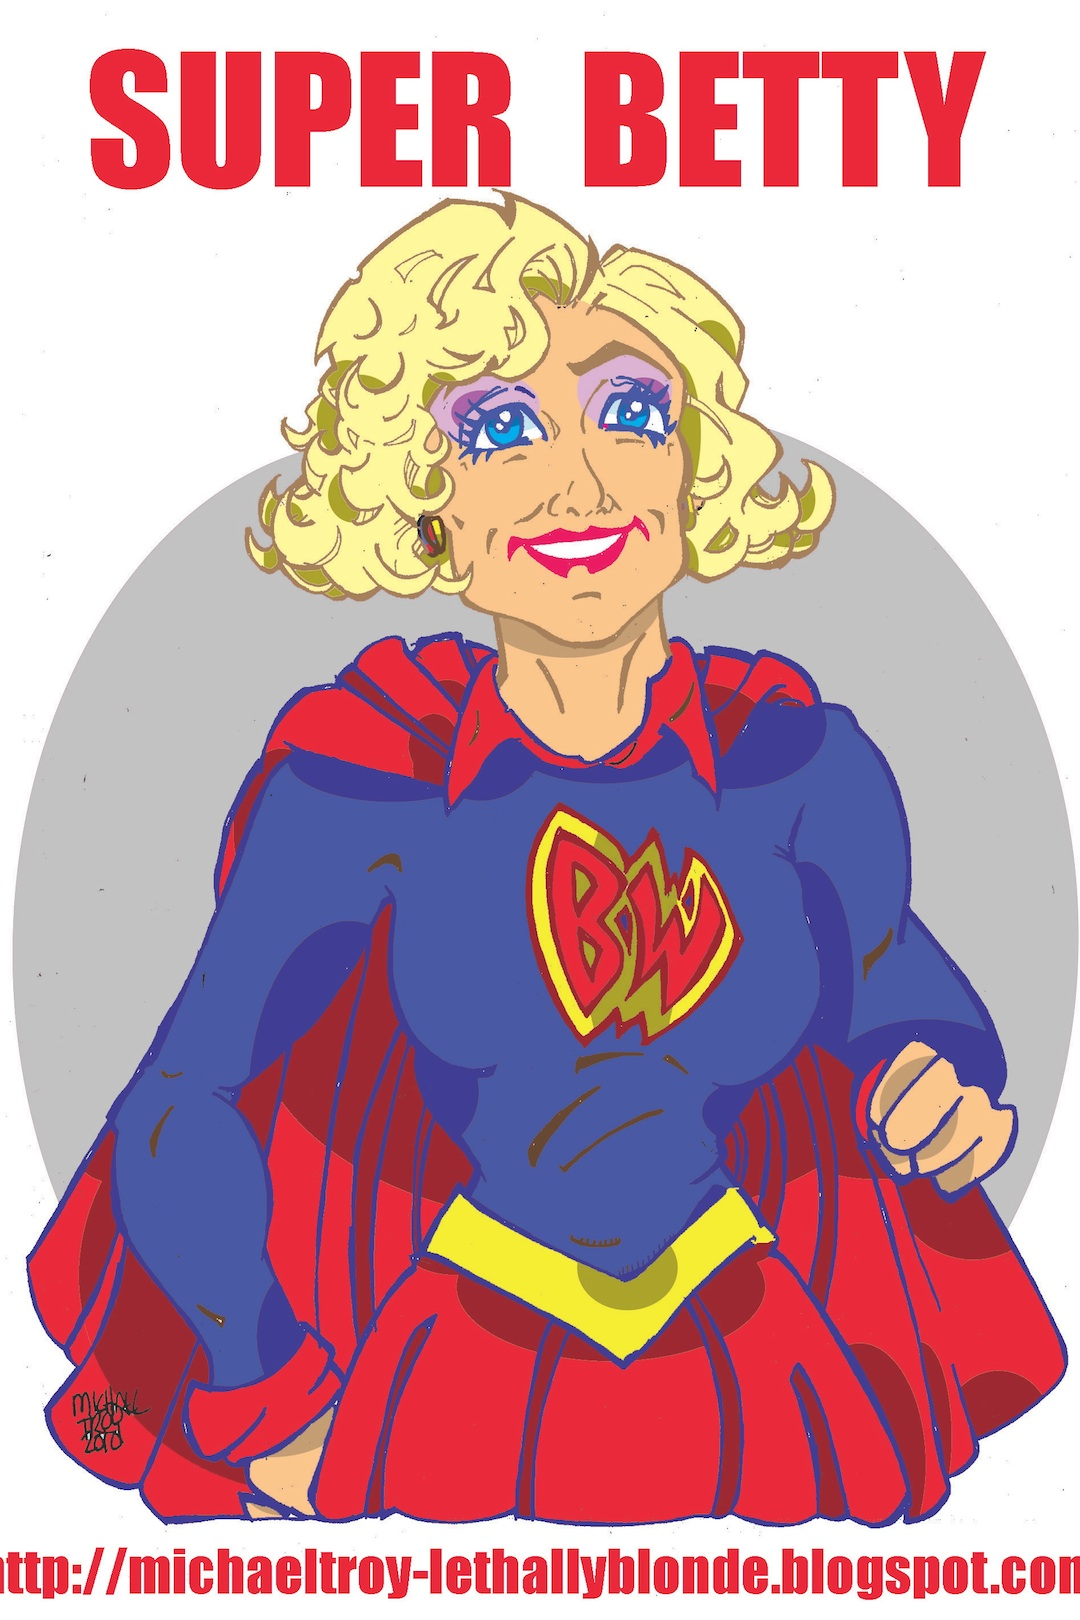 SUPERBETTY